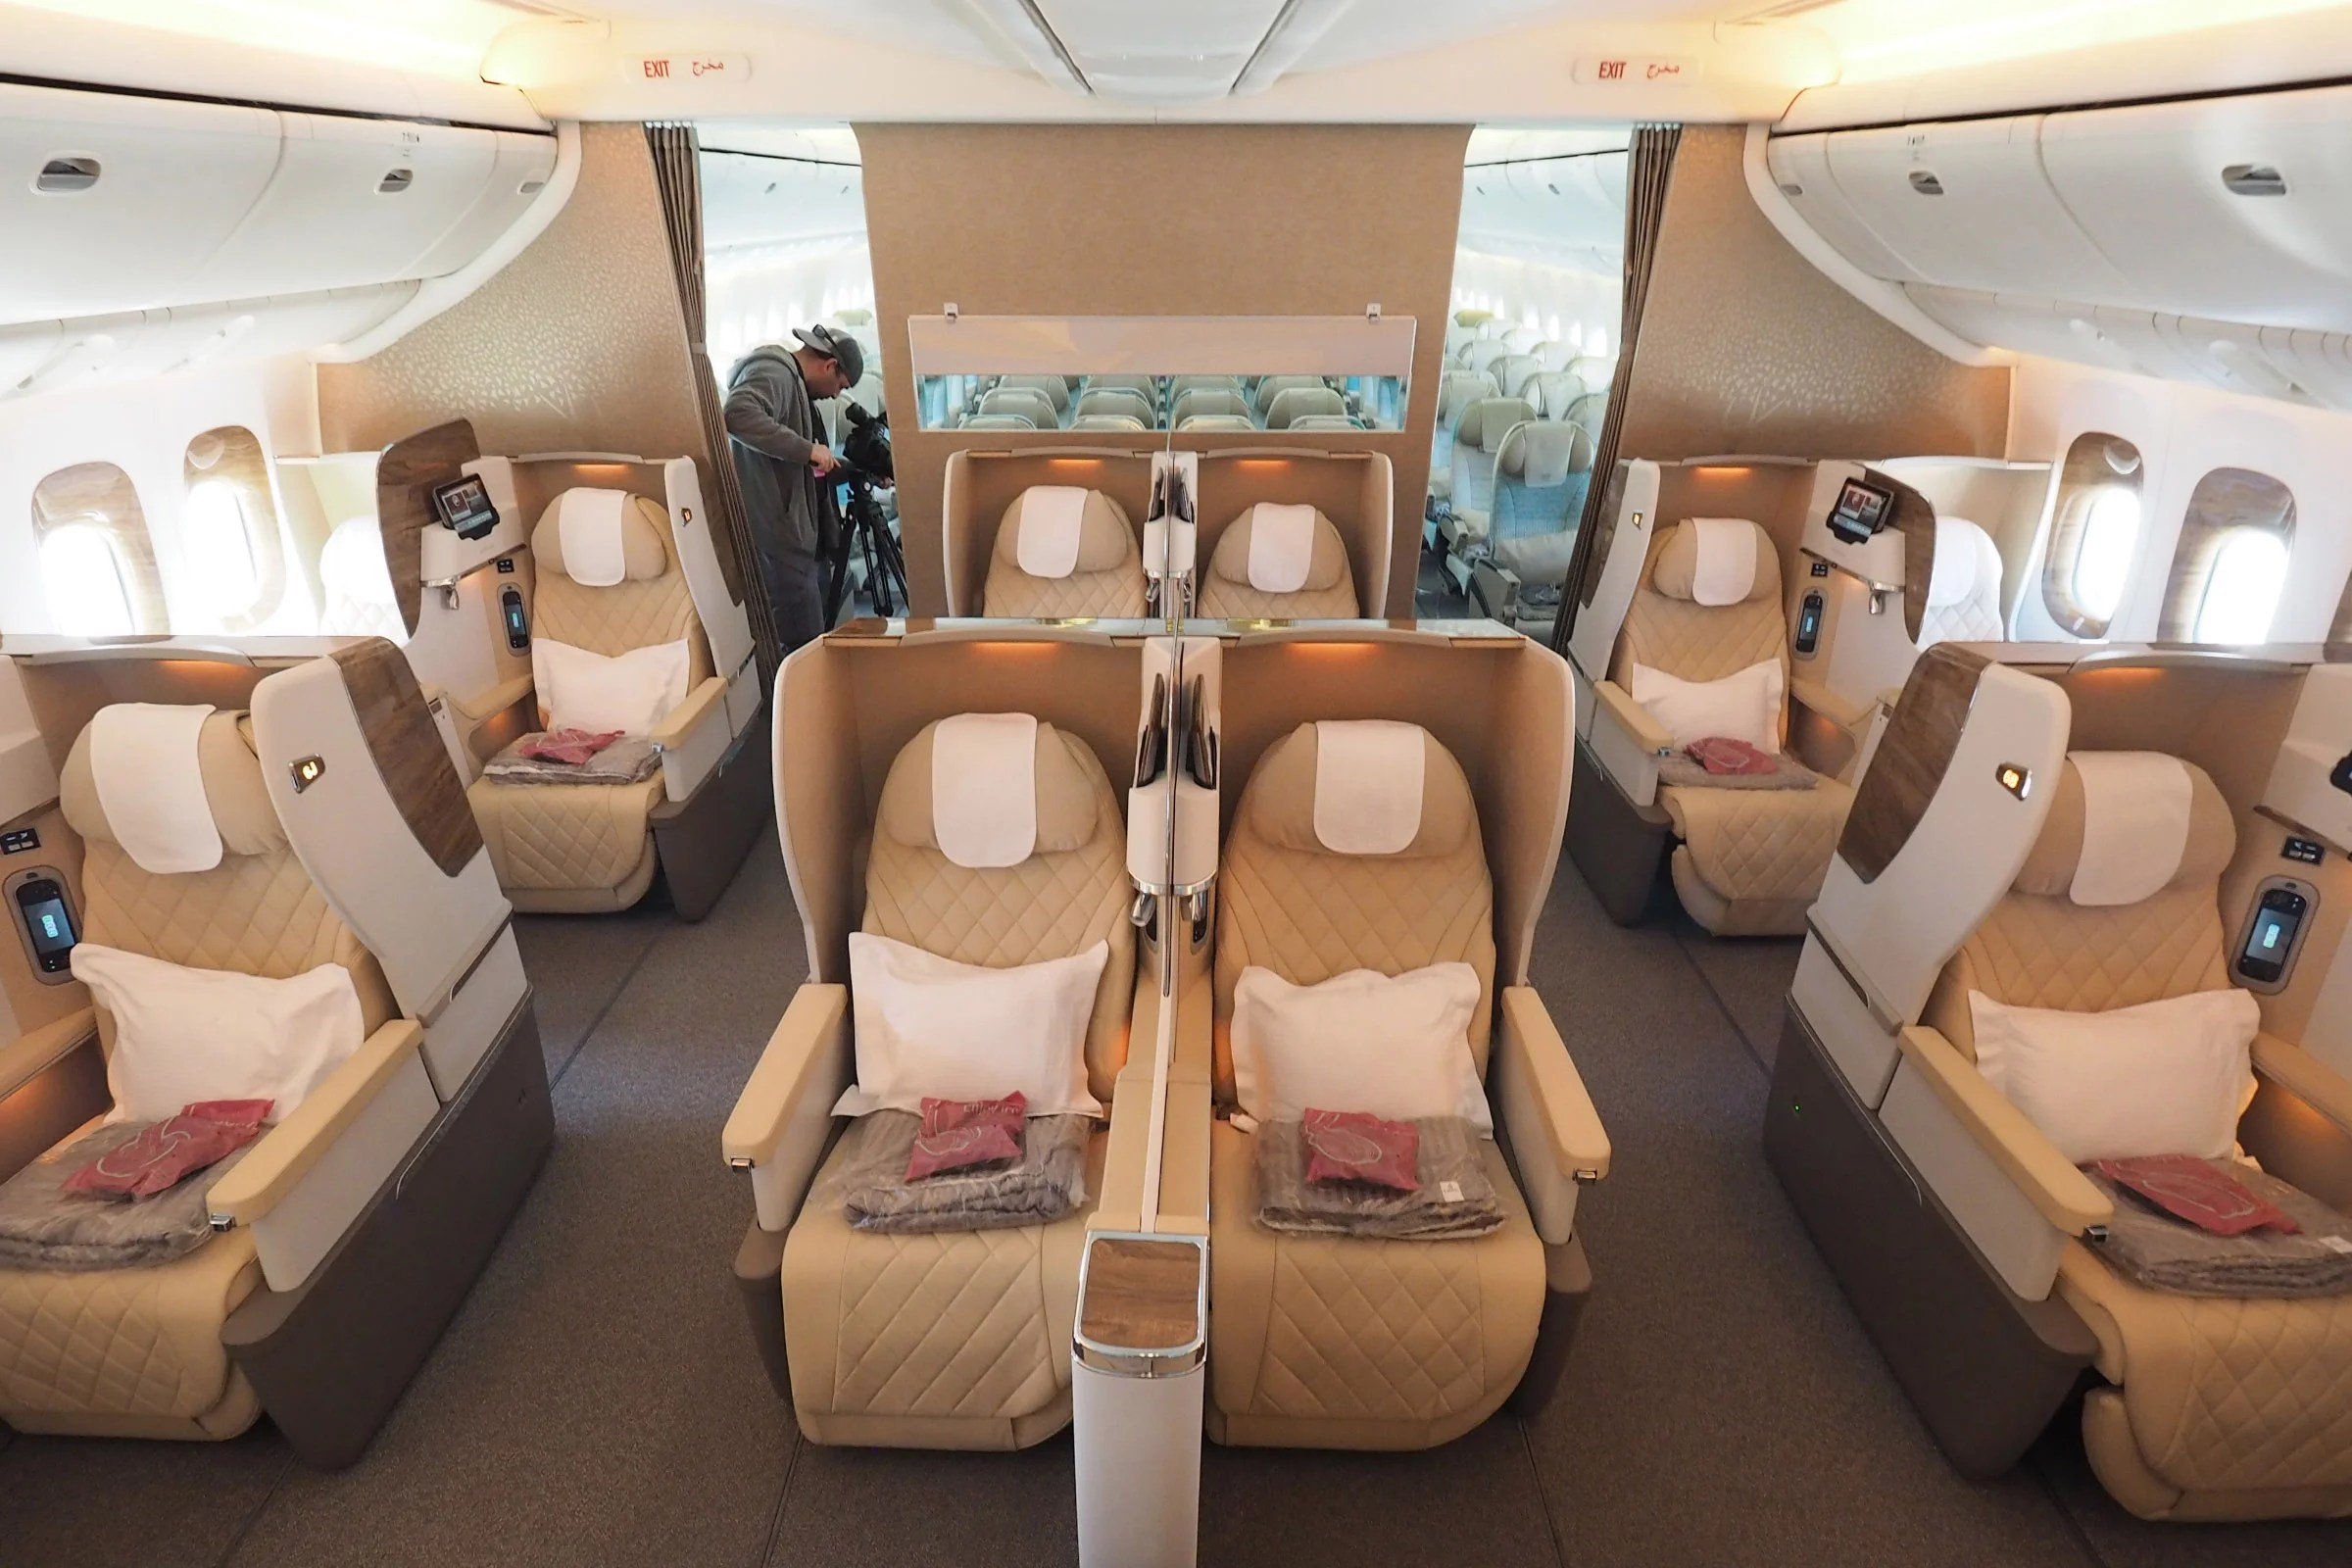 Comparing Emirates' Special Business Class Fare and Basic Economy